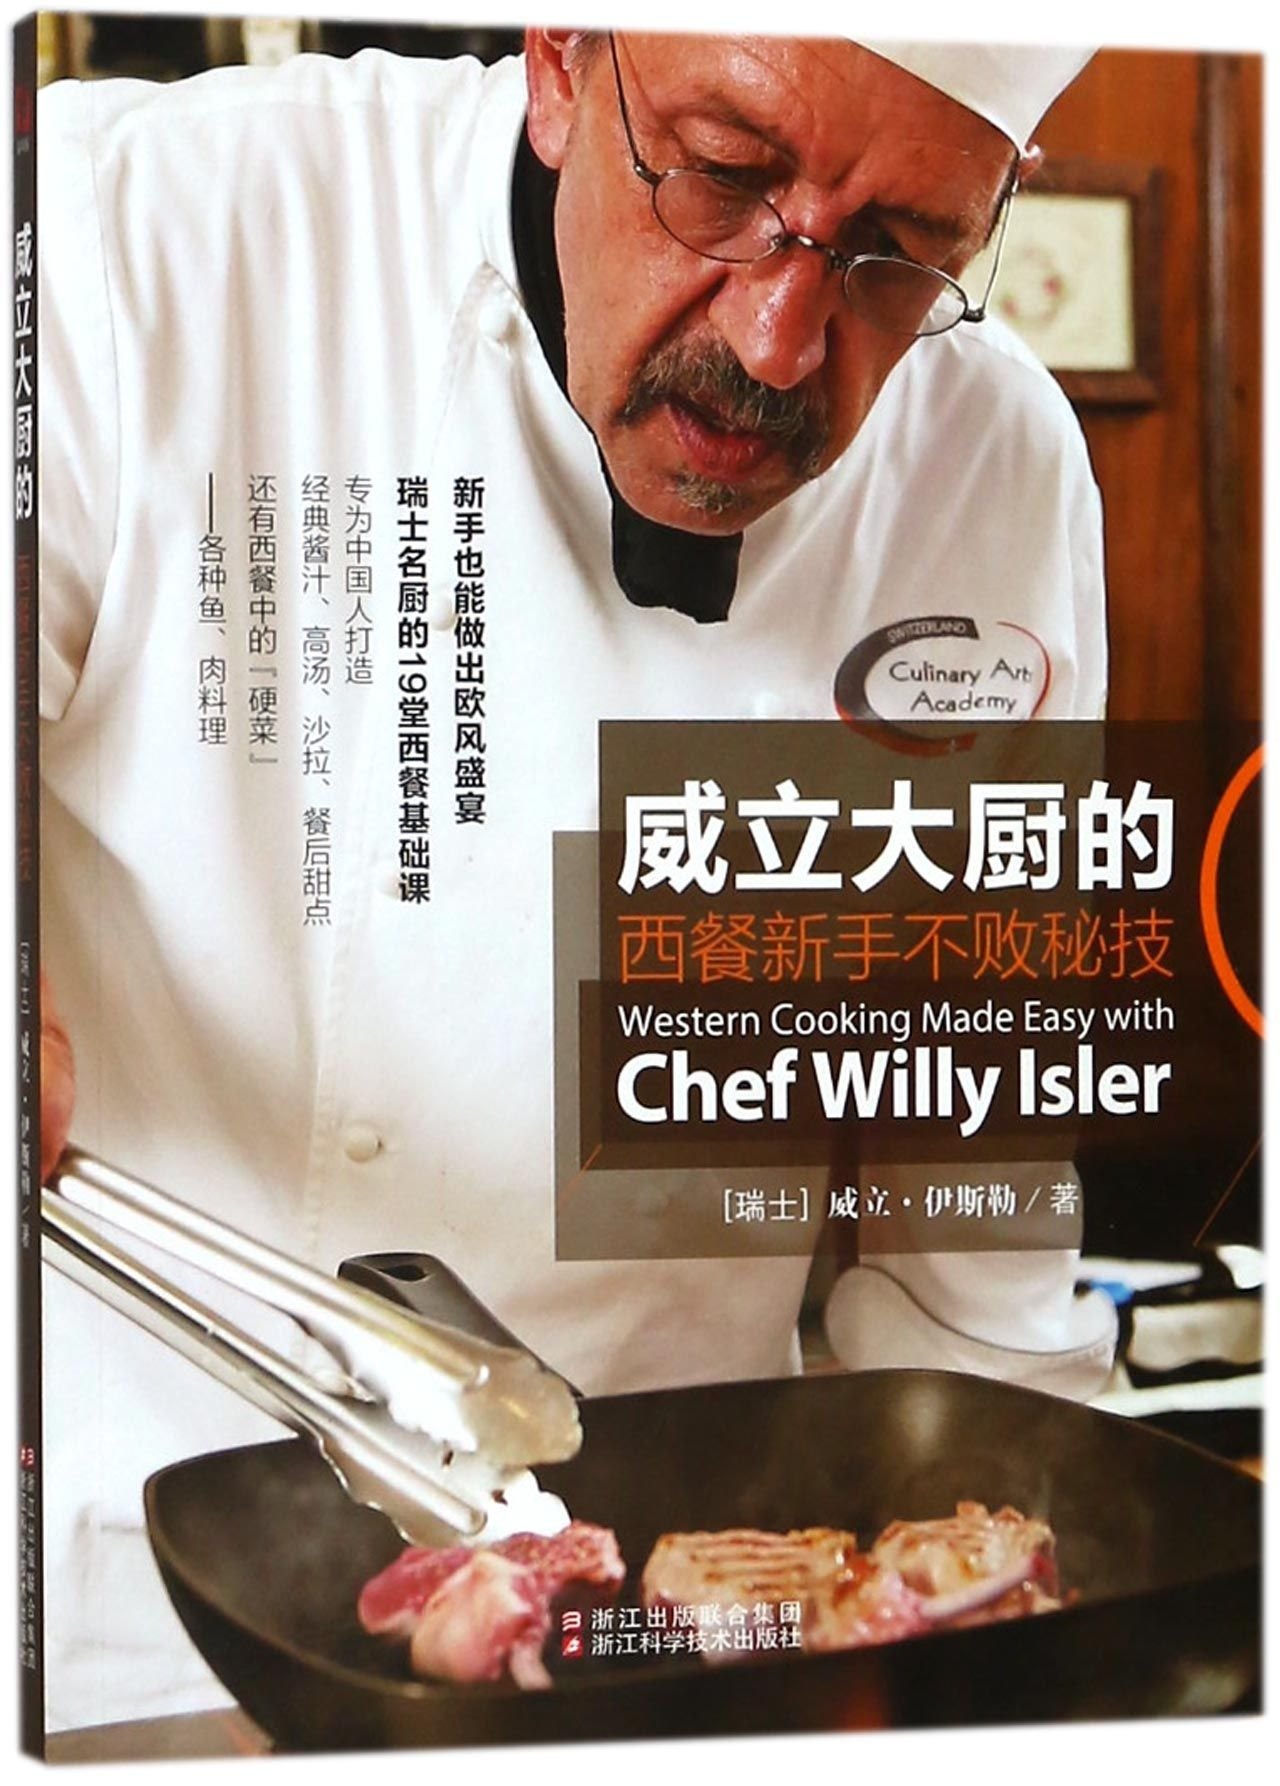 Download Western Cooking Made Easy with Chef Willy Isler (Chinese Edition) ebook